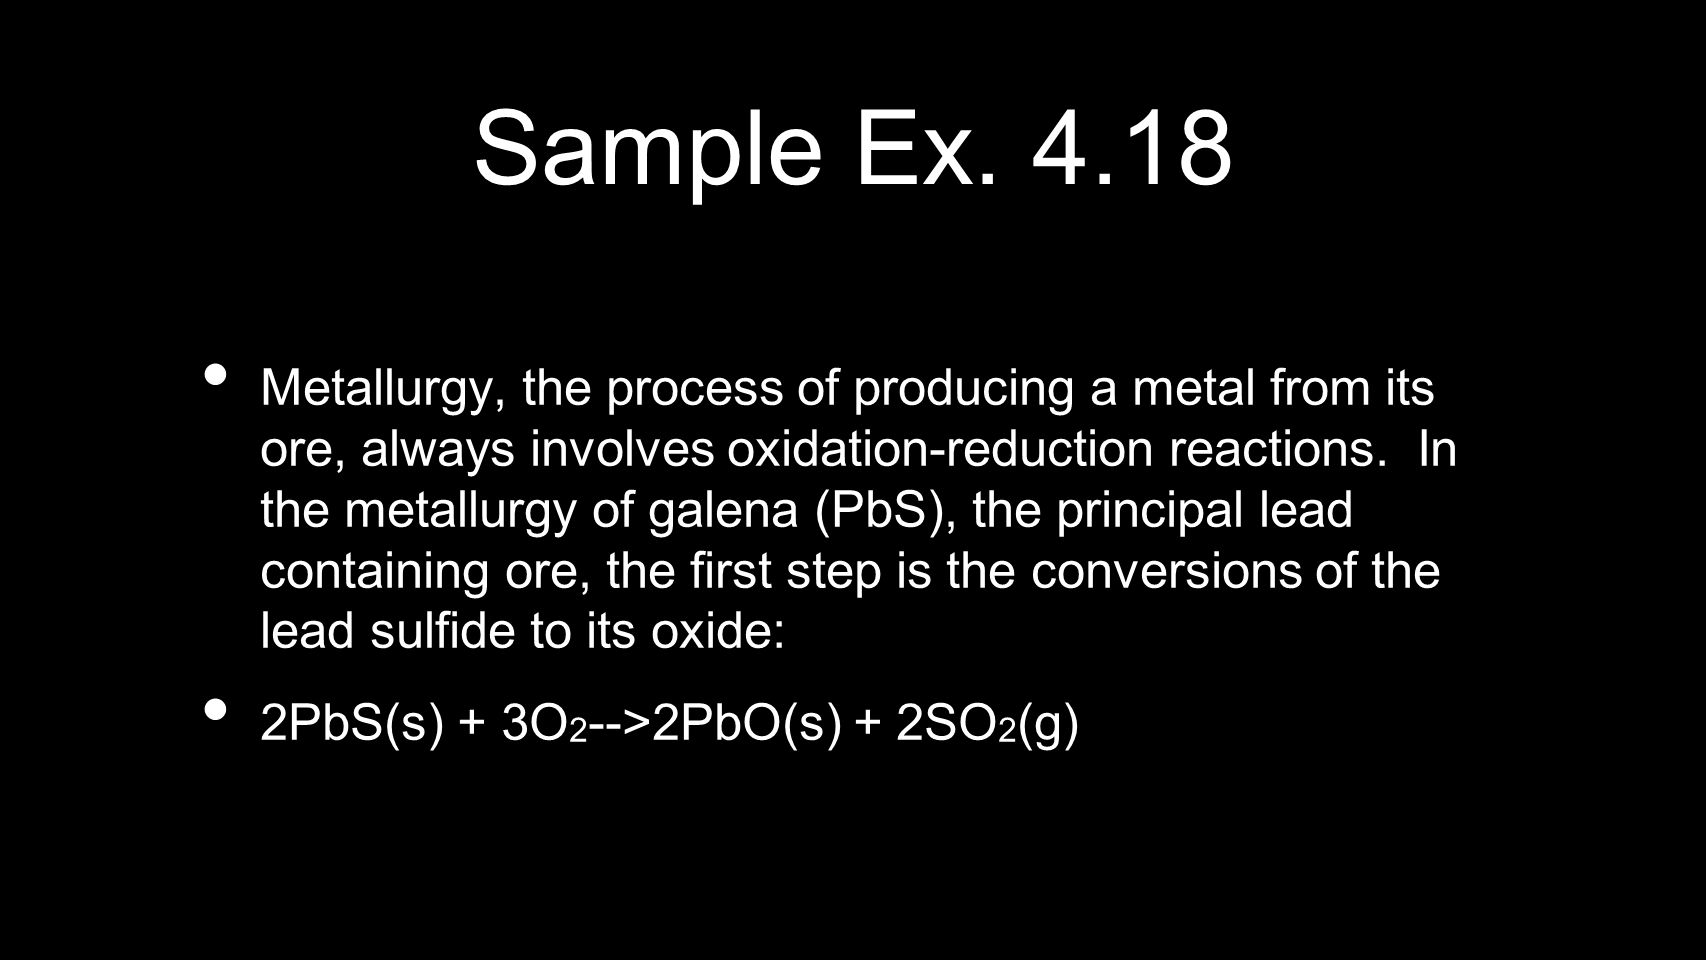 Sample Ex. 4.18